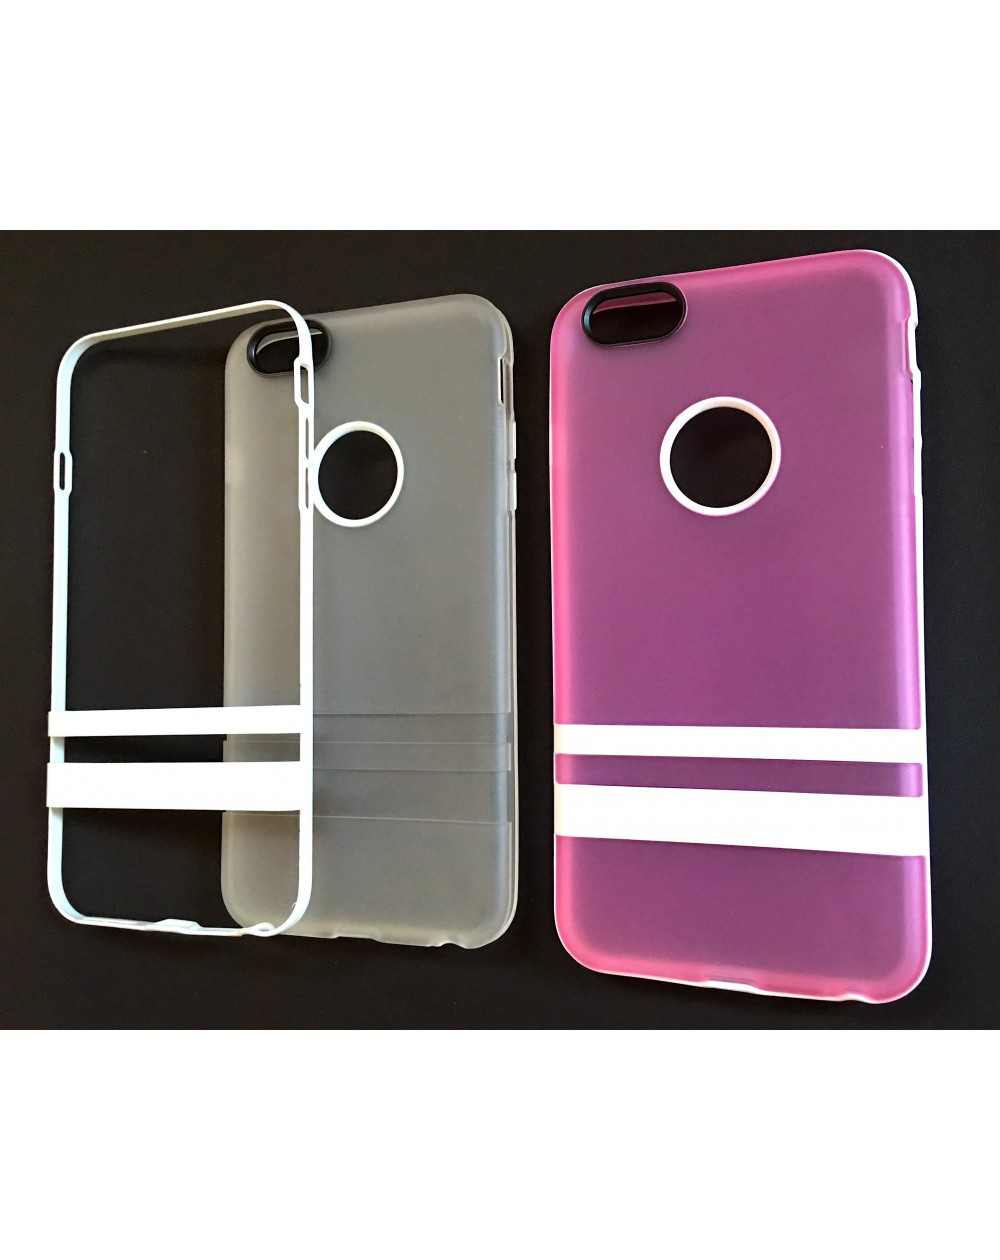 Funda trasera silicona reforzada iphone 6 plus - Fundas iphone silicona ...